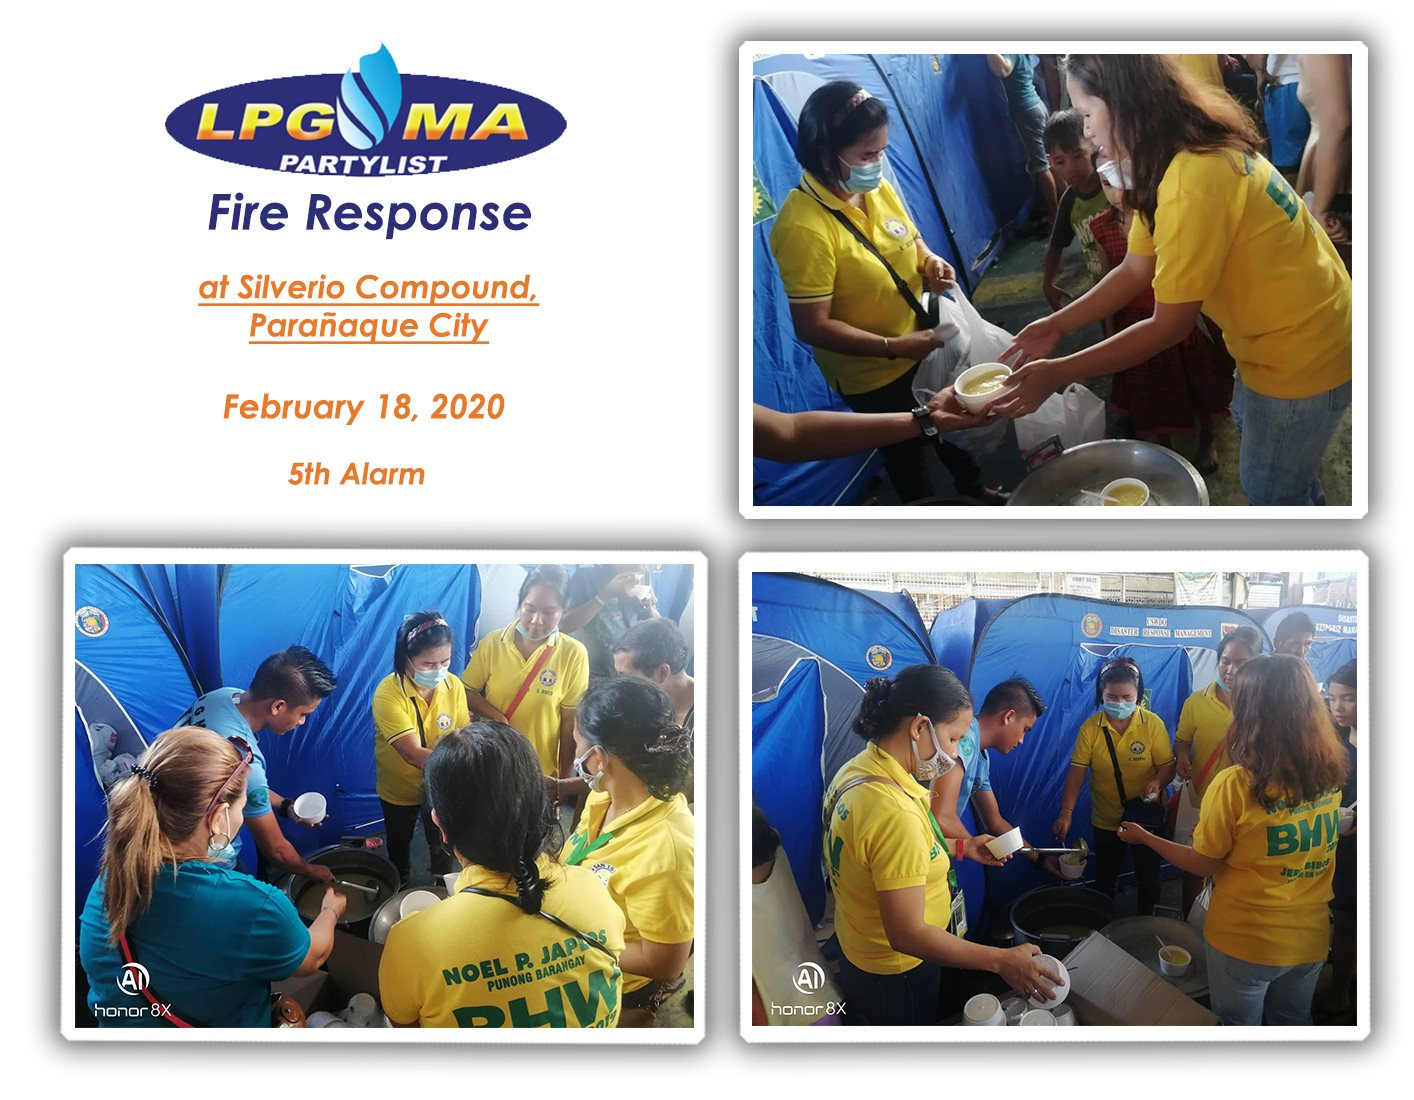 lpgma-fire-response-silvercompound